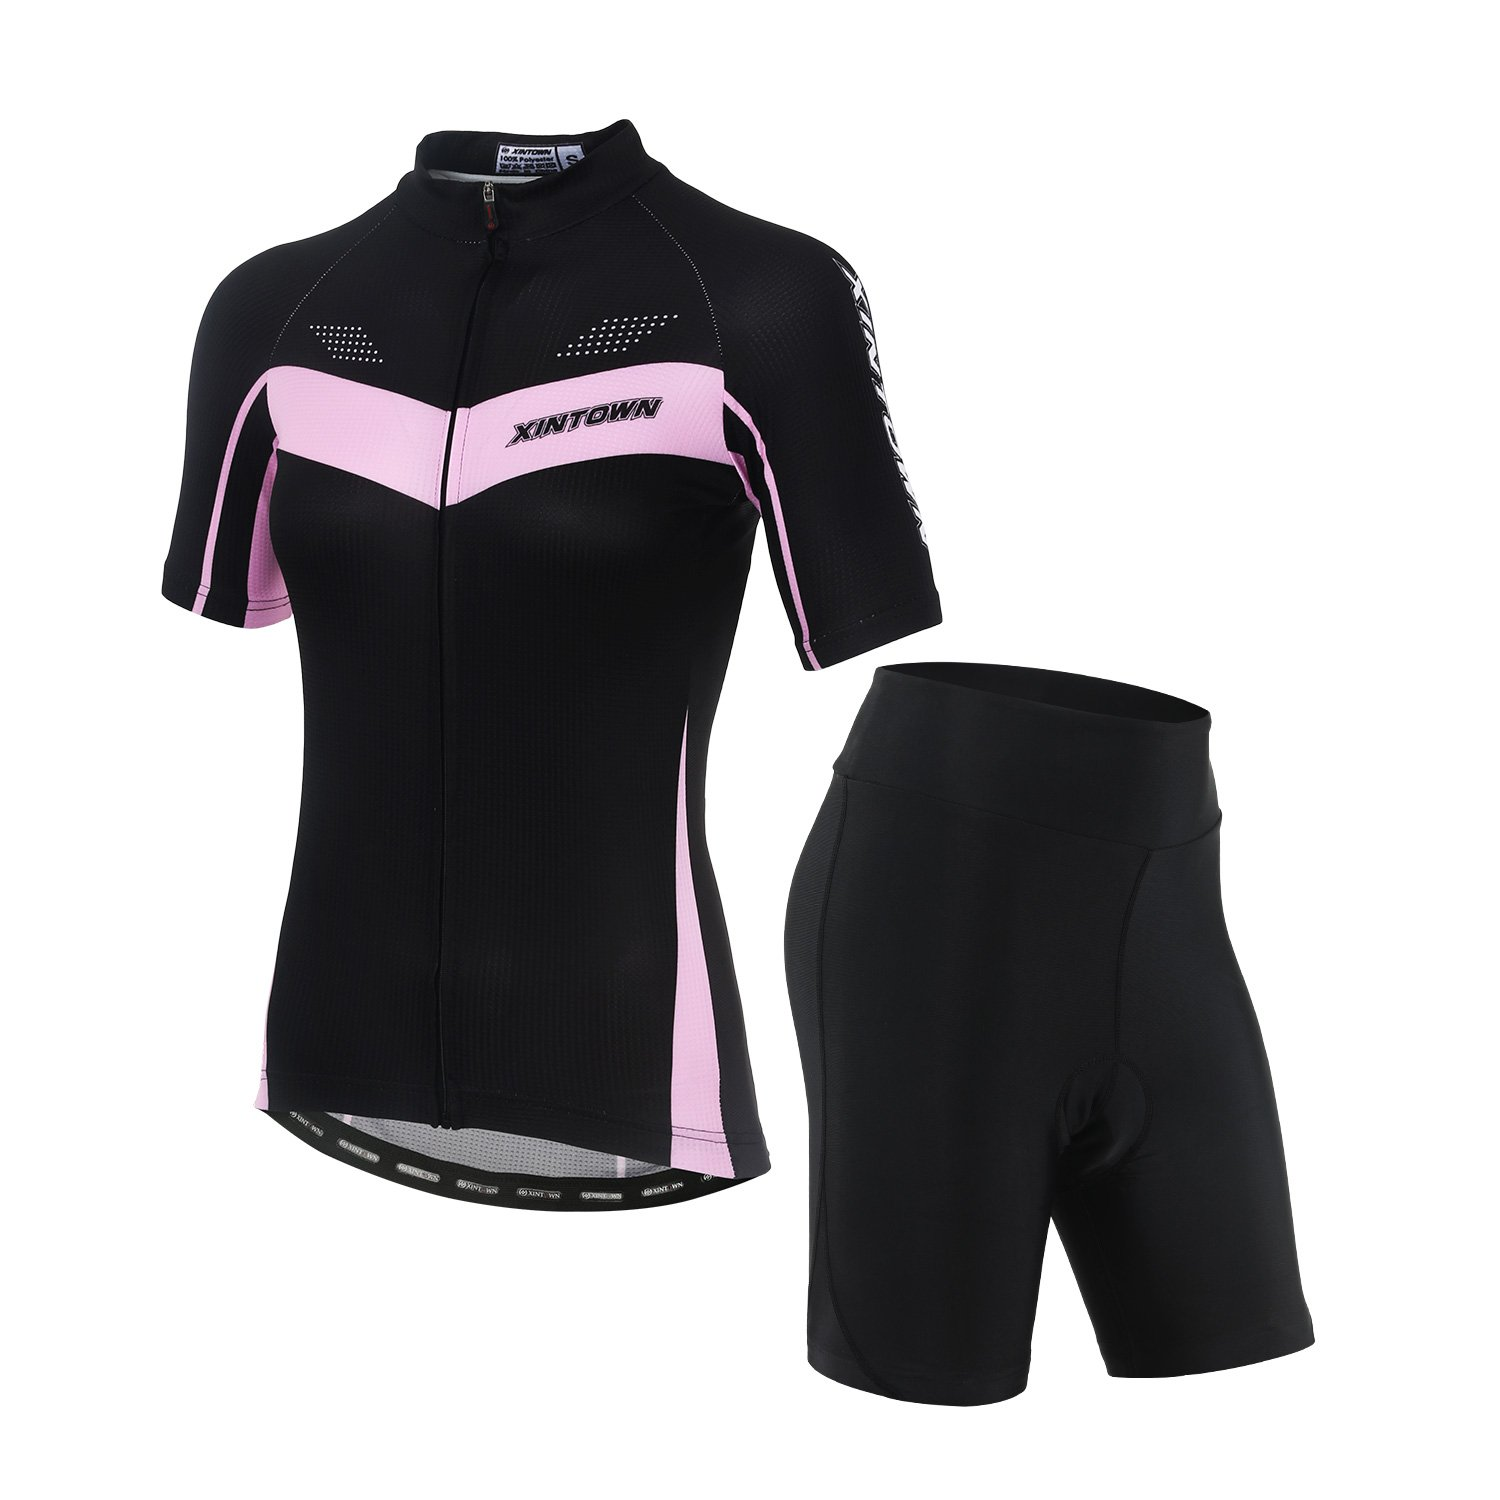 DuShow Women's Short Sleeve Cycling Jersey/Bicycle Top and 3D Padded Shorts Set